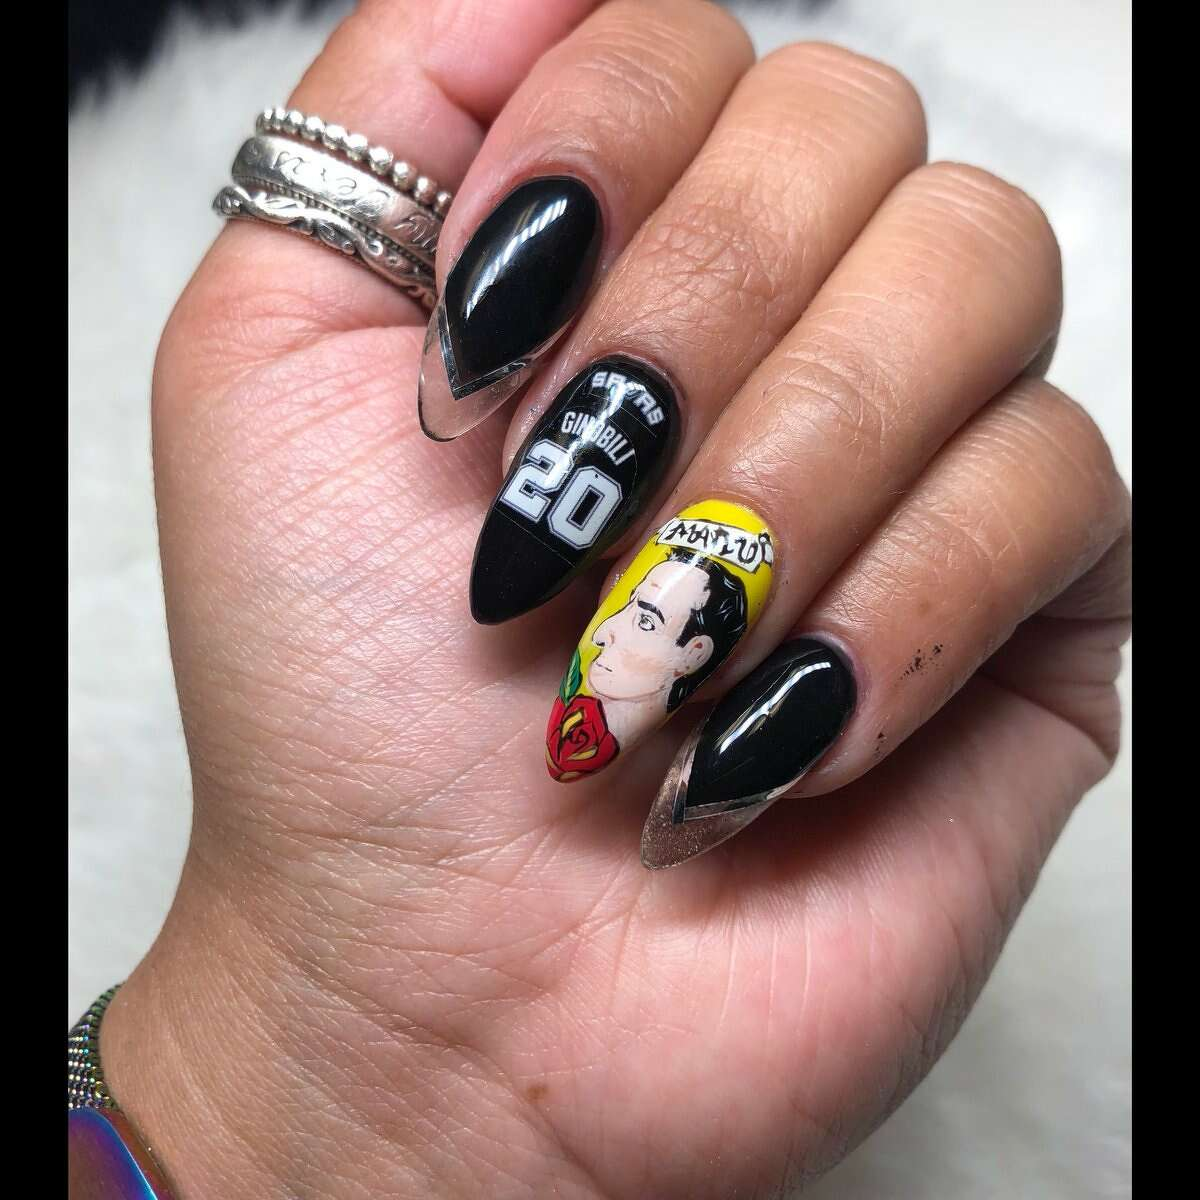 Nail down your love for him Artists like @TxManiMuse clearly have their finger on the pulse of Ginobli-loving hearts, check out her nails!